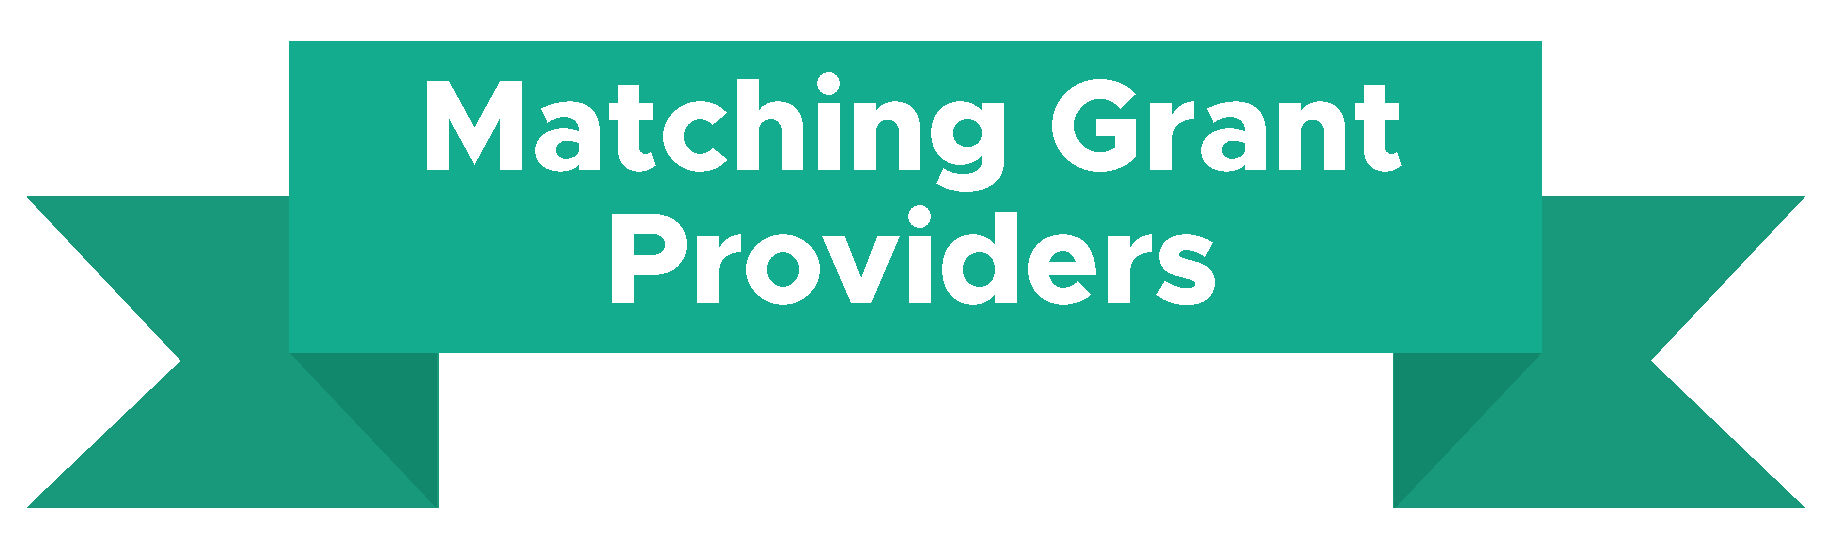 Matching Grant Providers